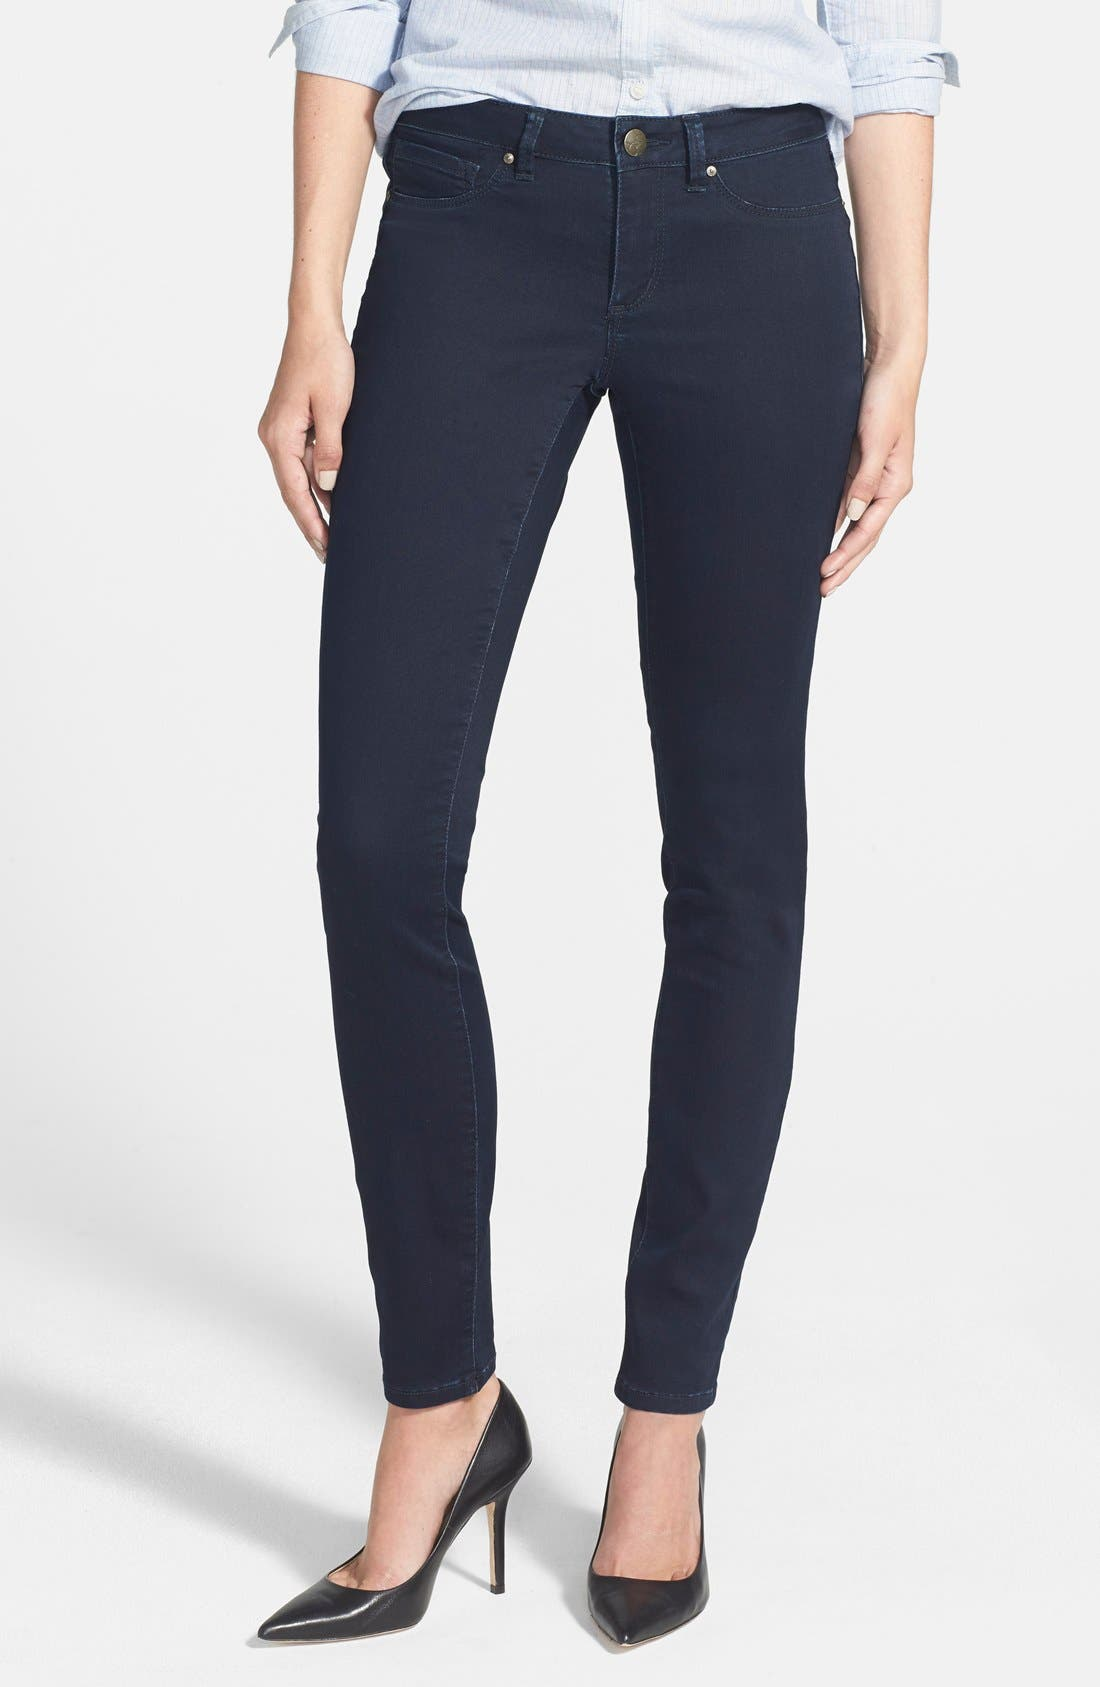 Main Image - Jessica Simpson 'Kiss Me' Super Skinny Jeans (Enzyme Rinse)